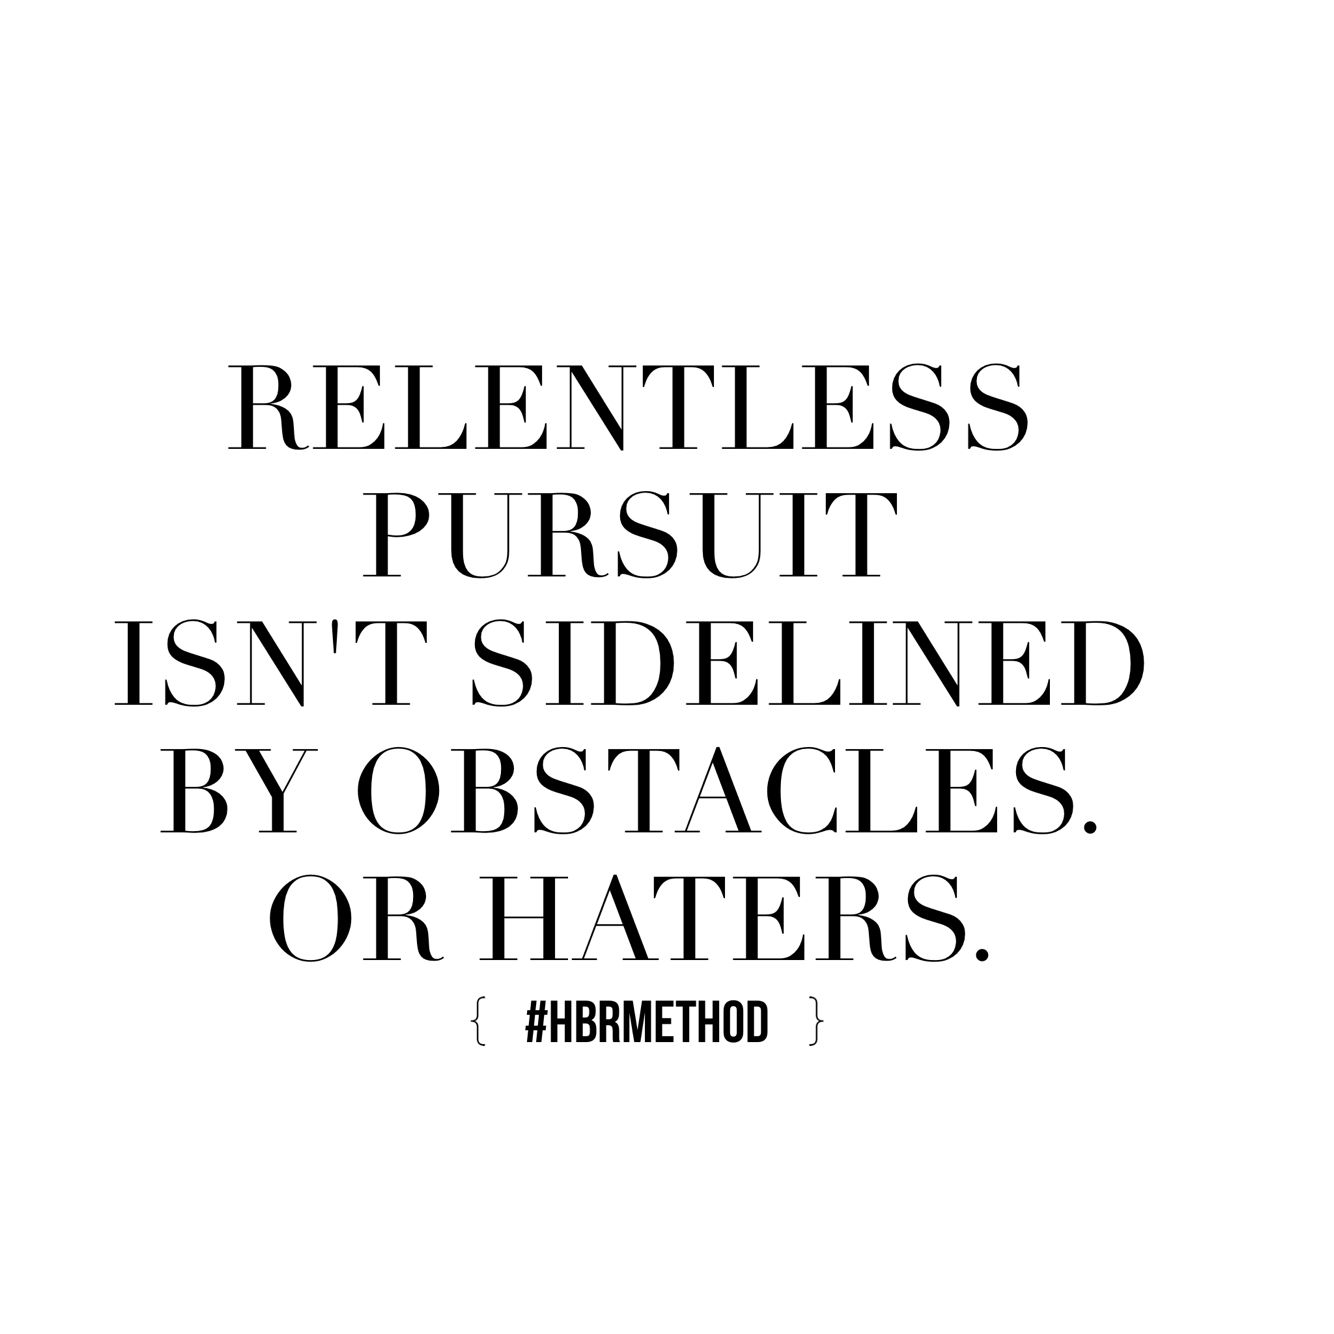 Hustle Quotes Hvrmethod Relentless Pursuit The Hustle Quote Quotes